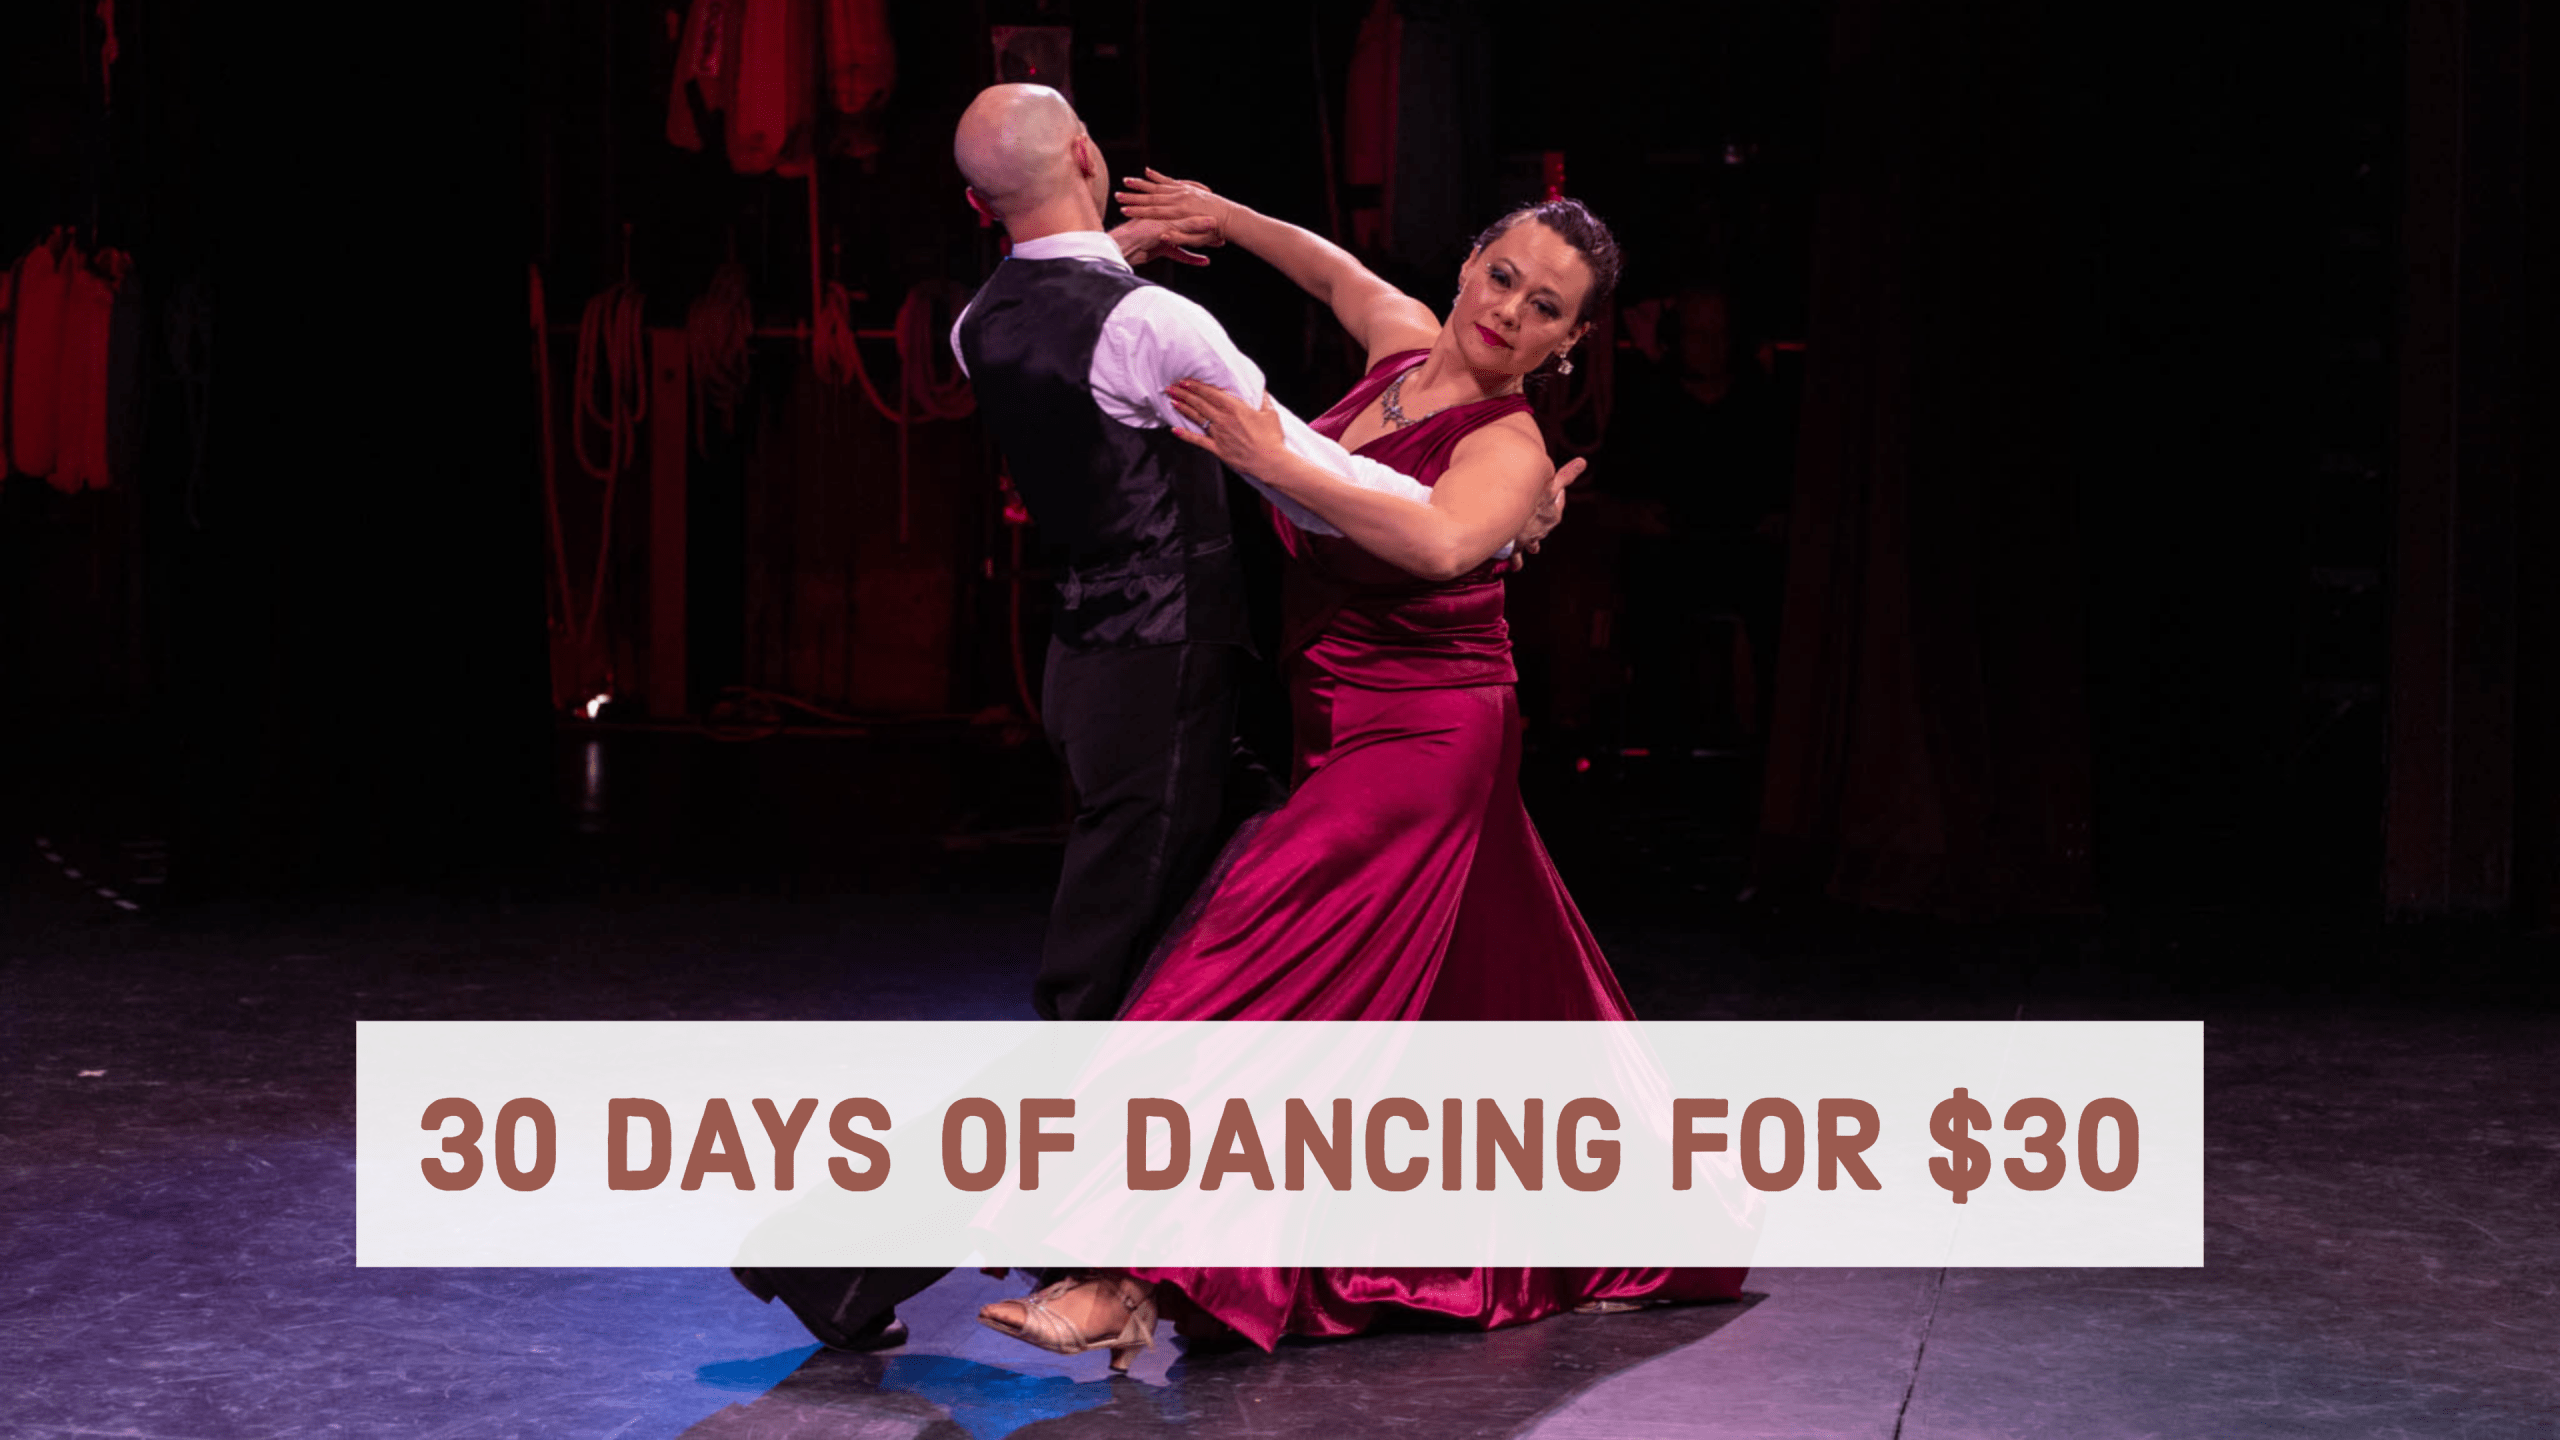 30 Days of Dancing For $30